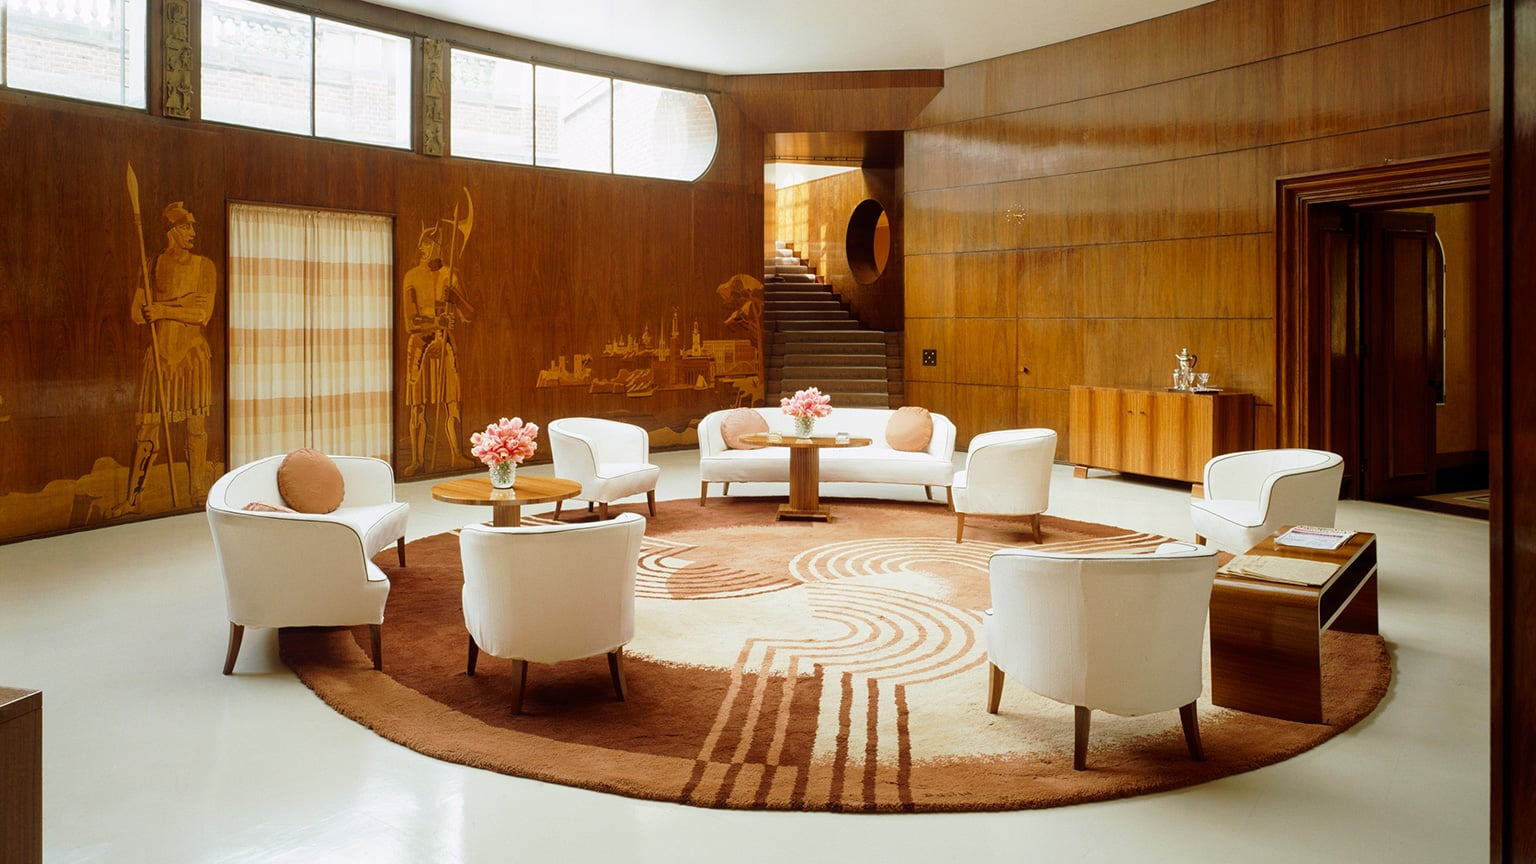 7. Eltham Palace, London - Free entry with National Art Pass